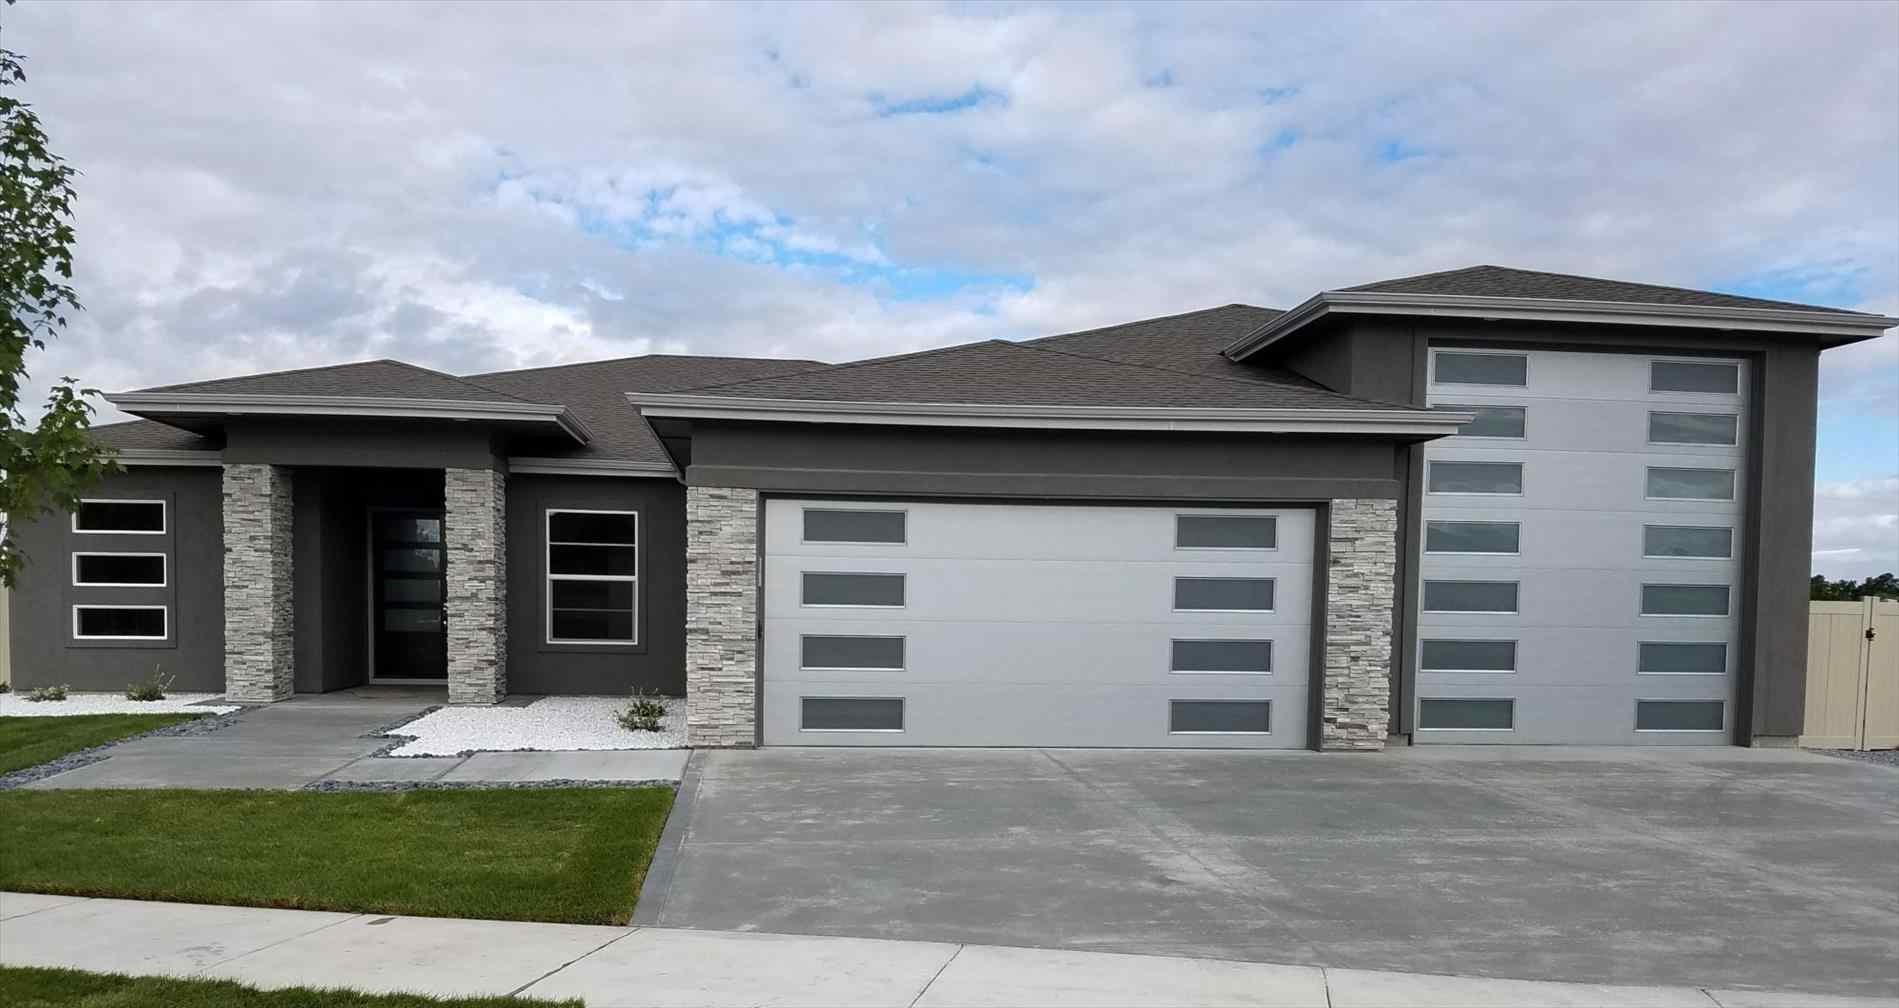 Garage builders near me services checklist and free for Residential builders near me